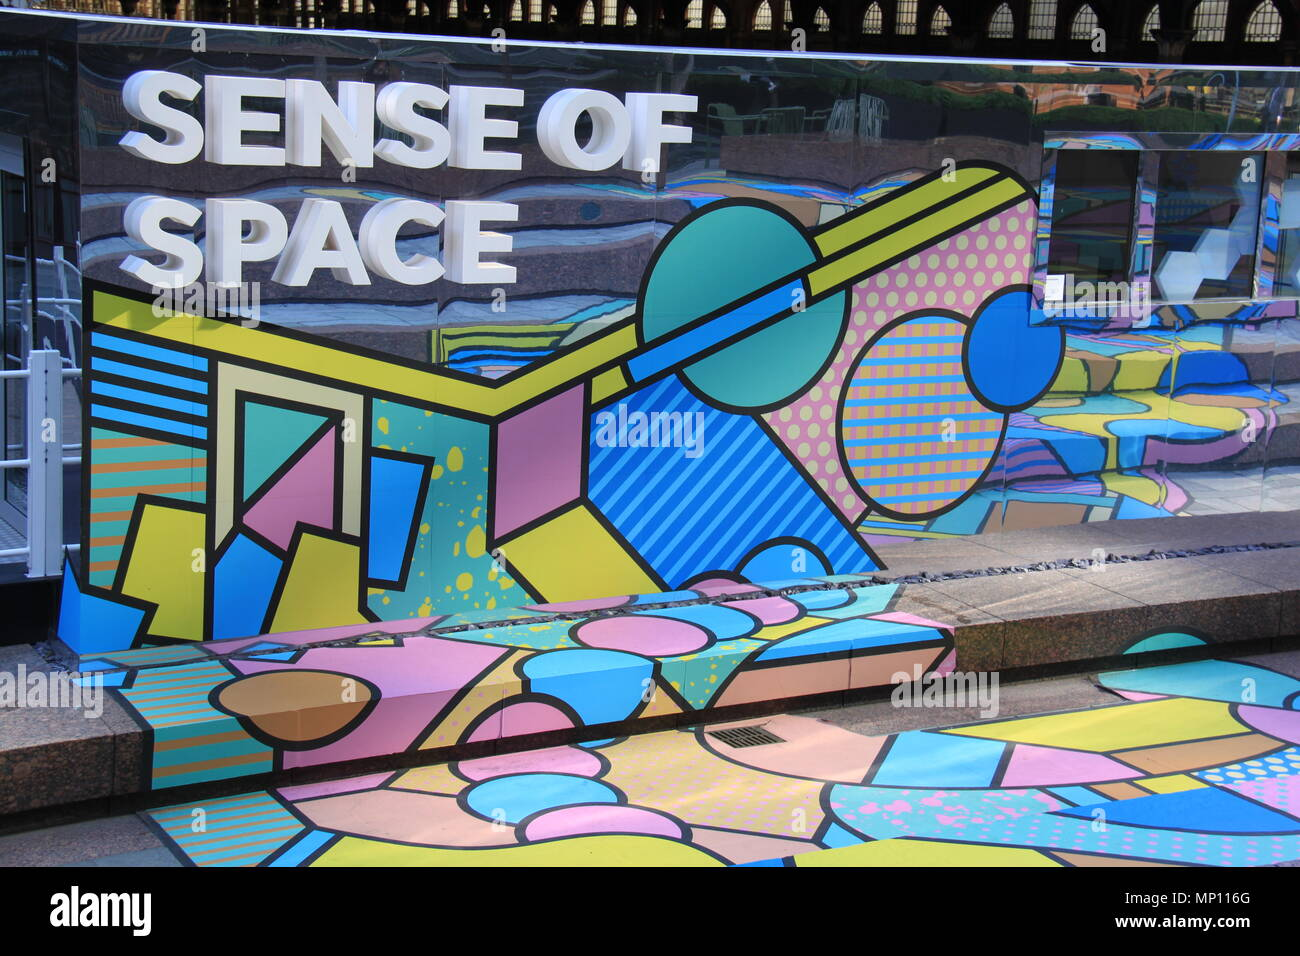 Sense Of Space: Free art installation challenging human sensory perceptions in Exchange Square, Broadgate, London, England, UK, PETER GRANT - Stock Image